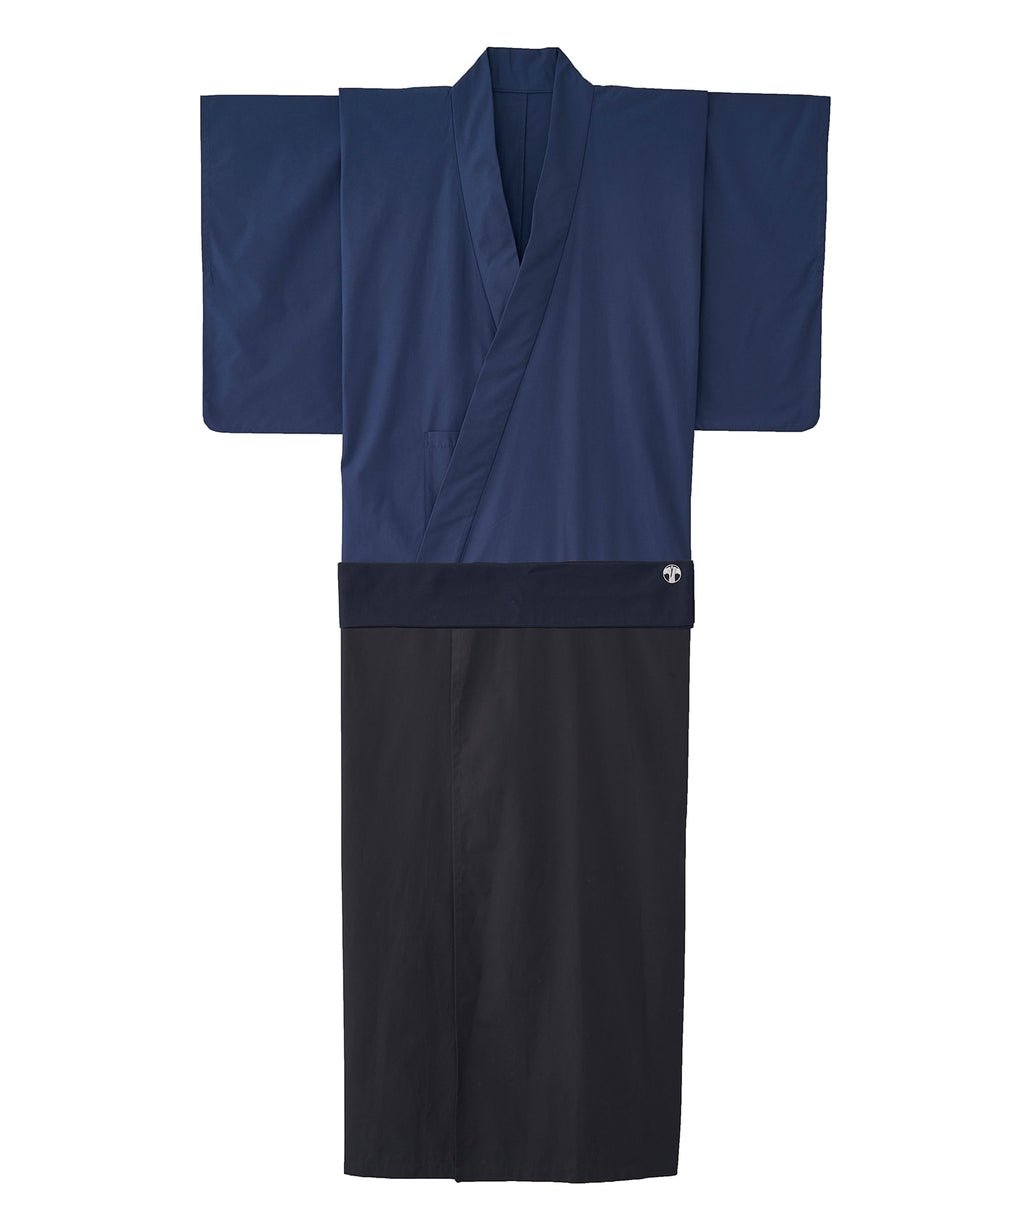 WAROBE / BI-COLOR YUKATA / NAVY x DARK NAVY